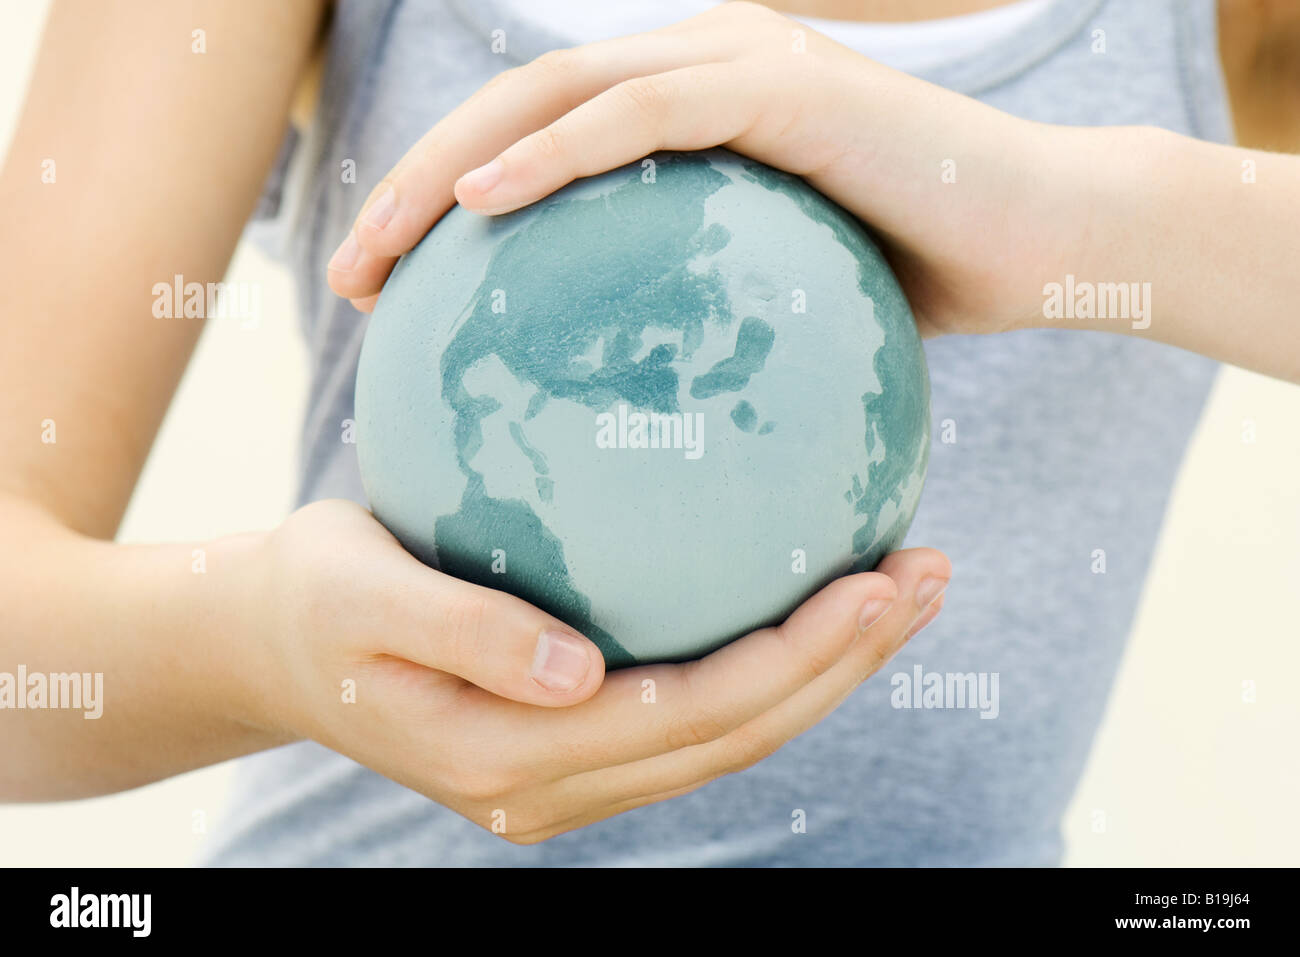 Child holding globe in hands, close-up - Stock Image